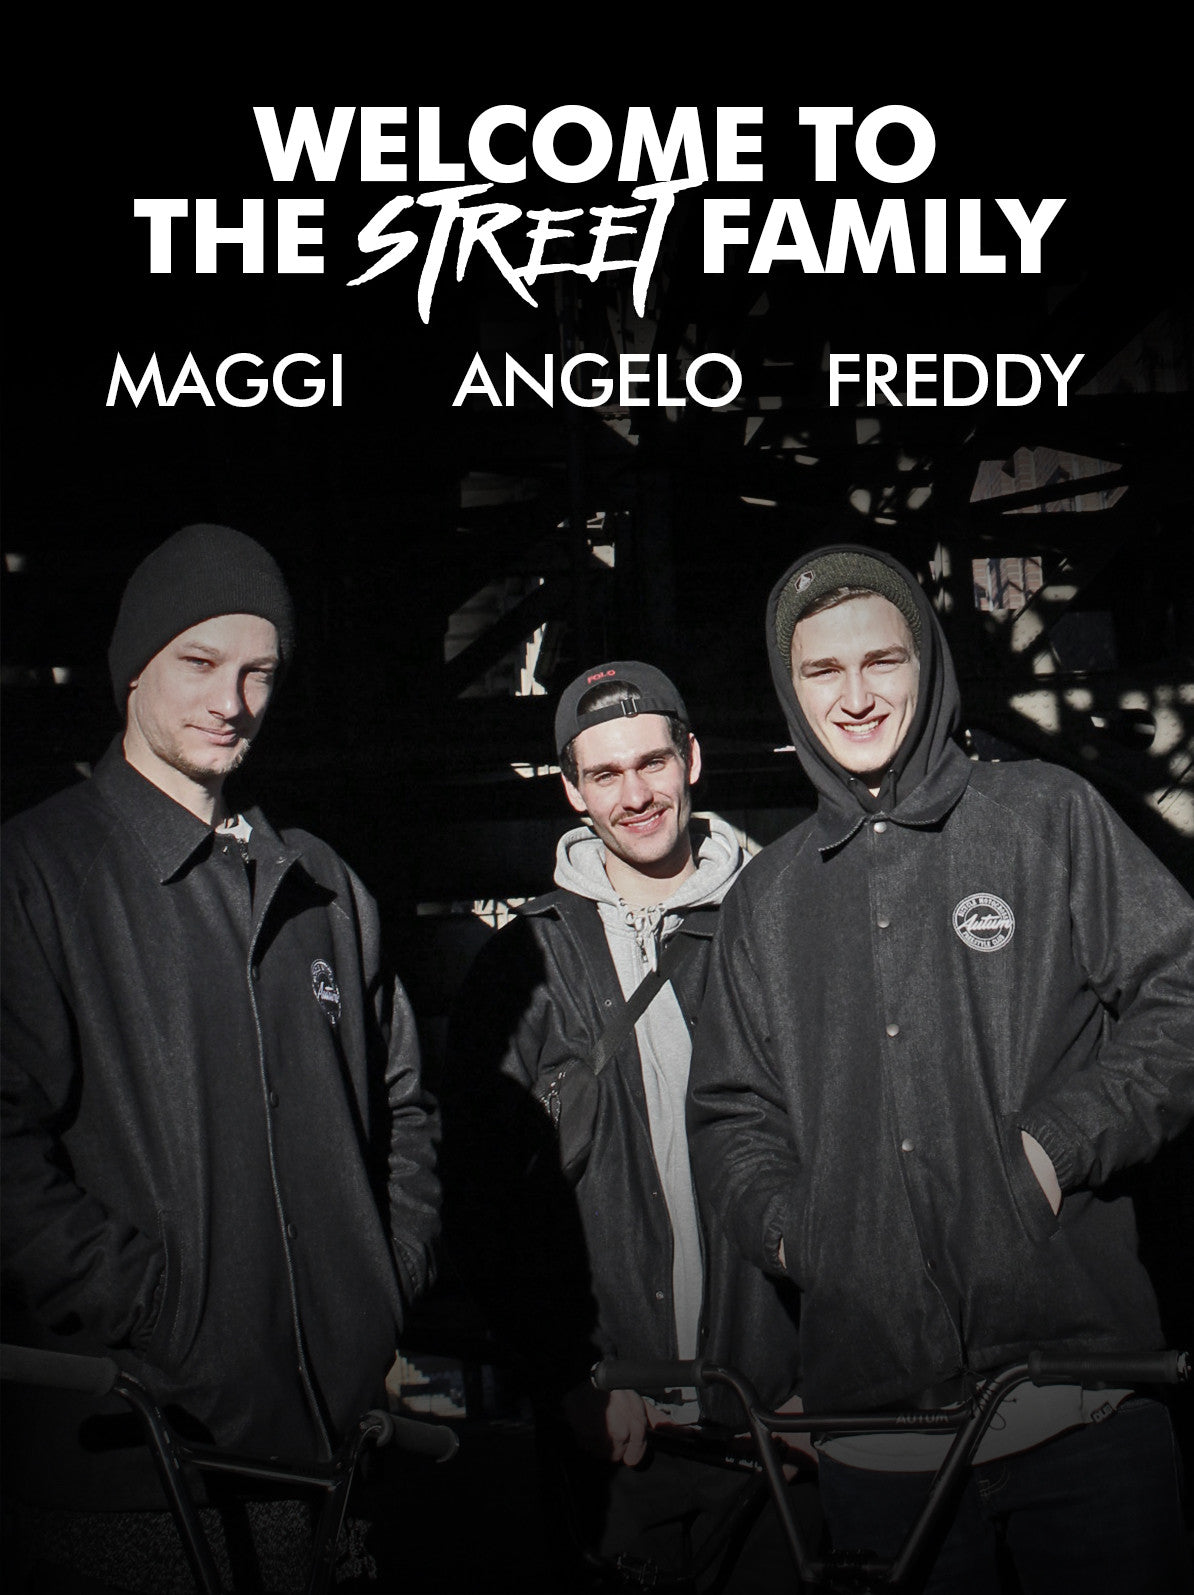 THE STREET FAMILY